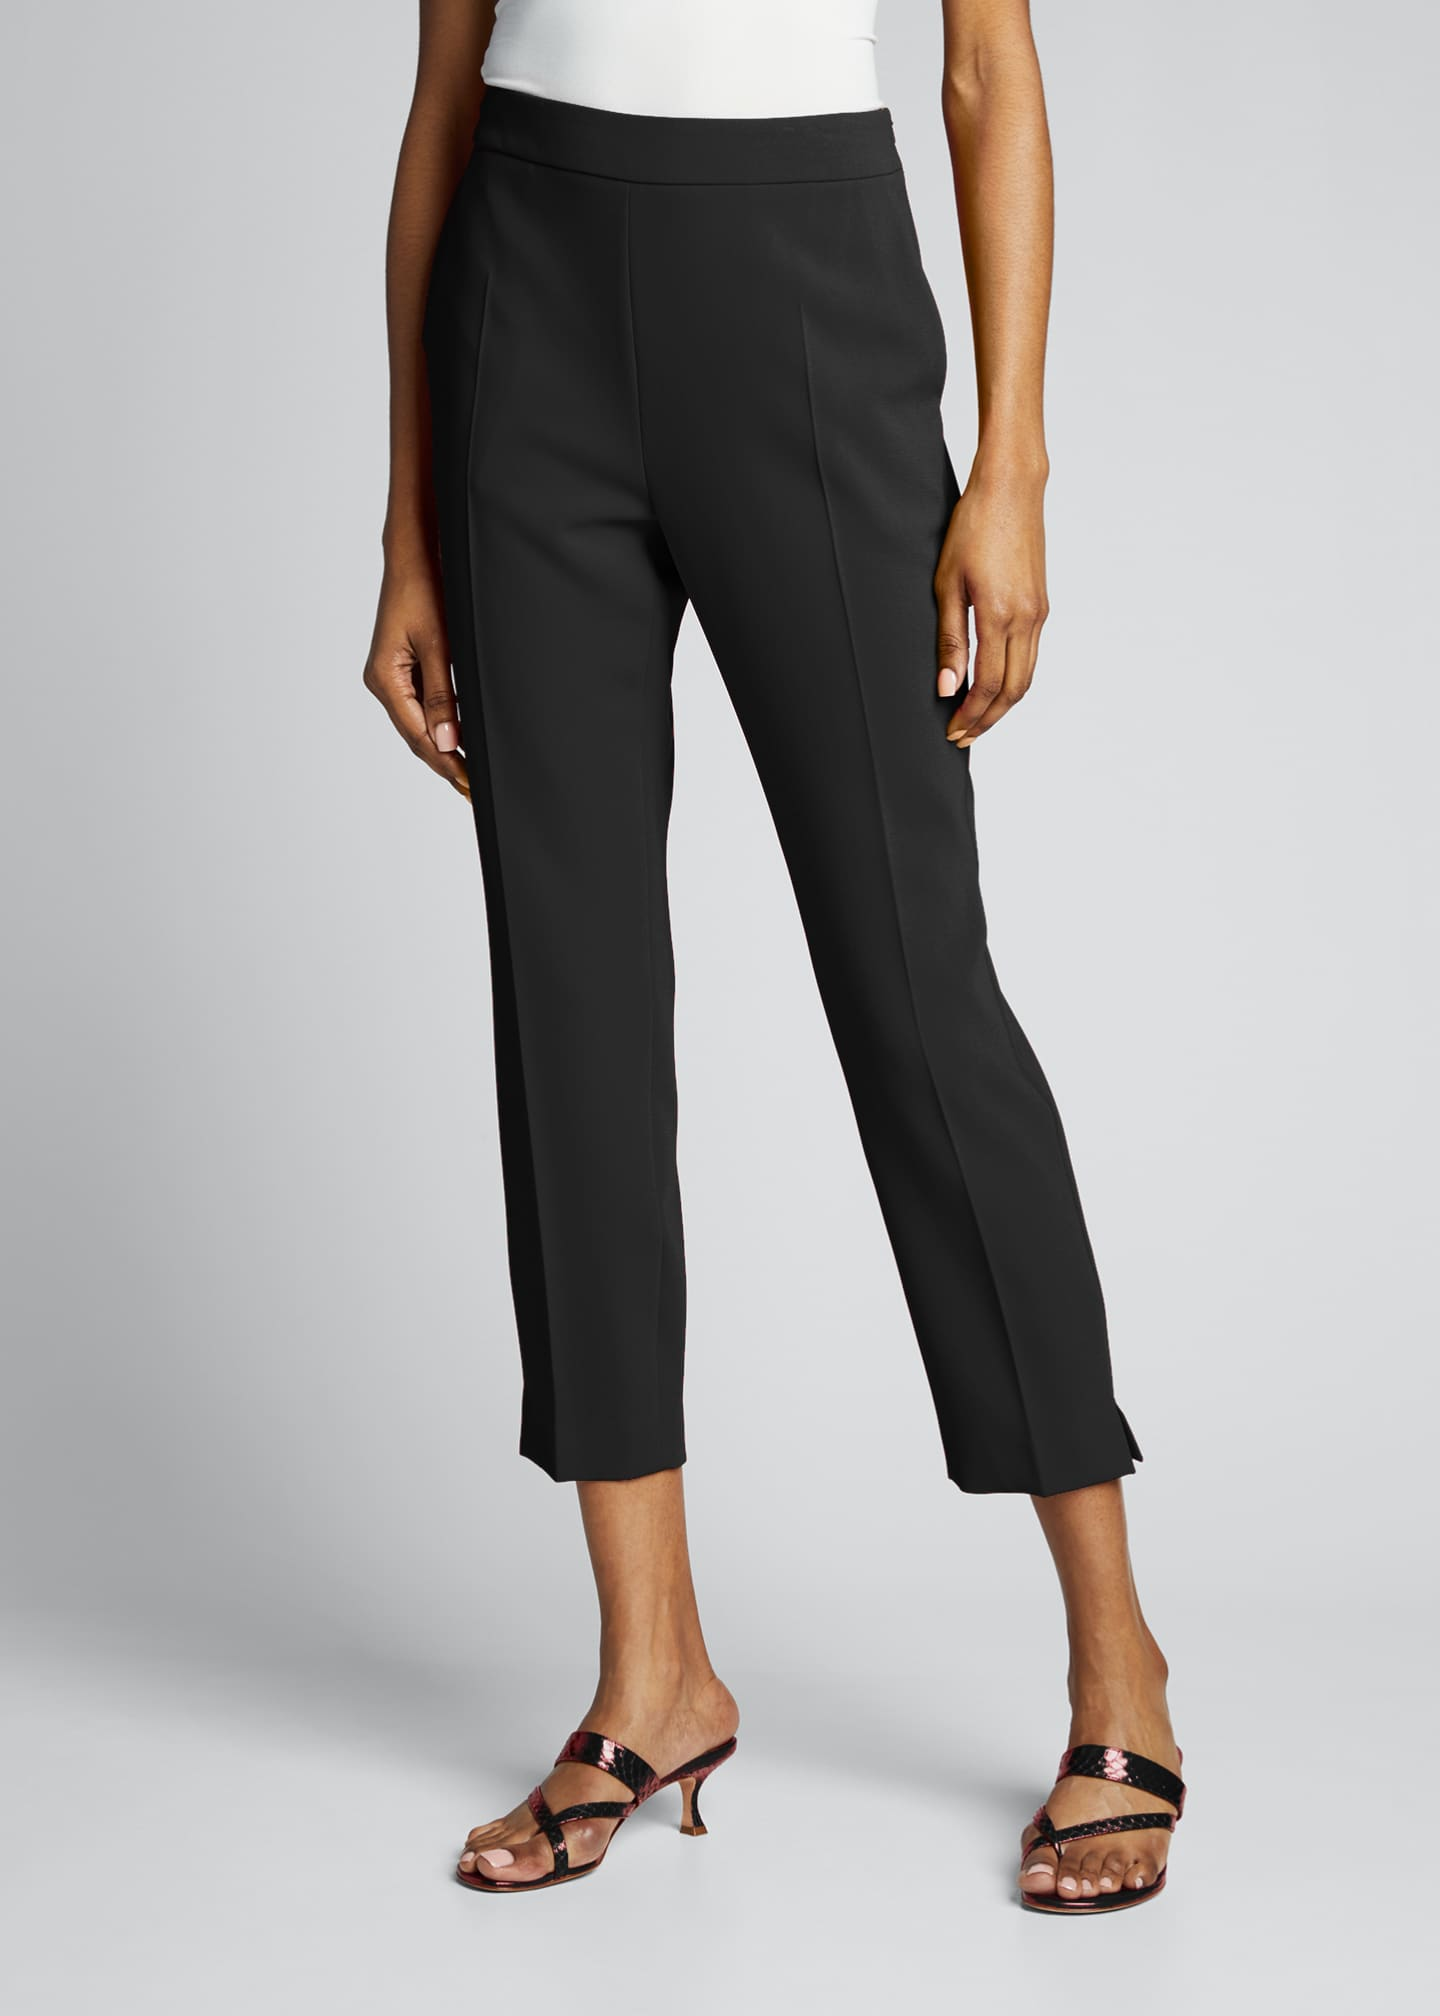 Image 3 of 5: Kerry Crepe Cropped Pants